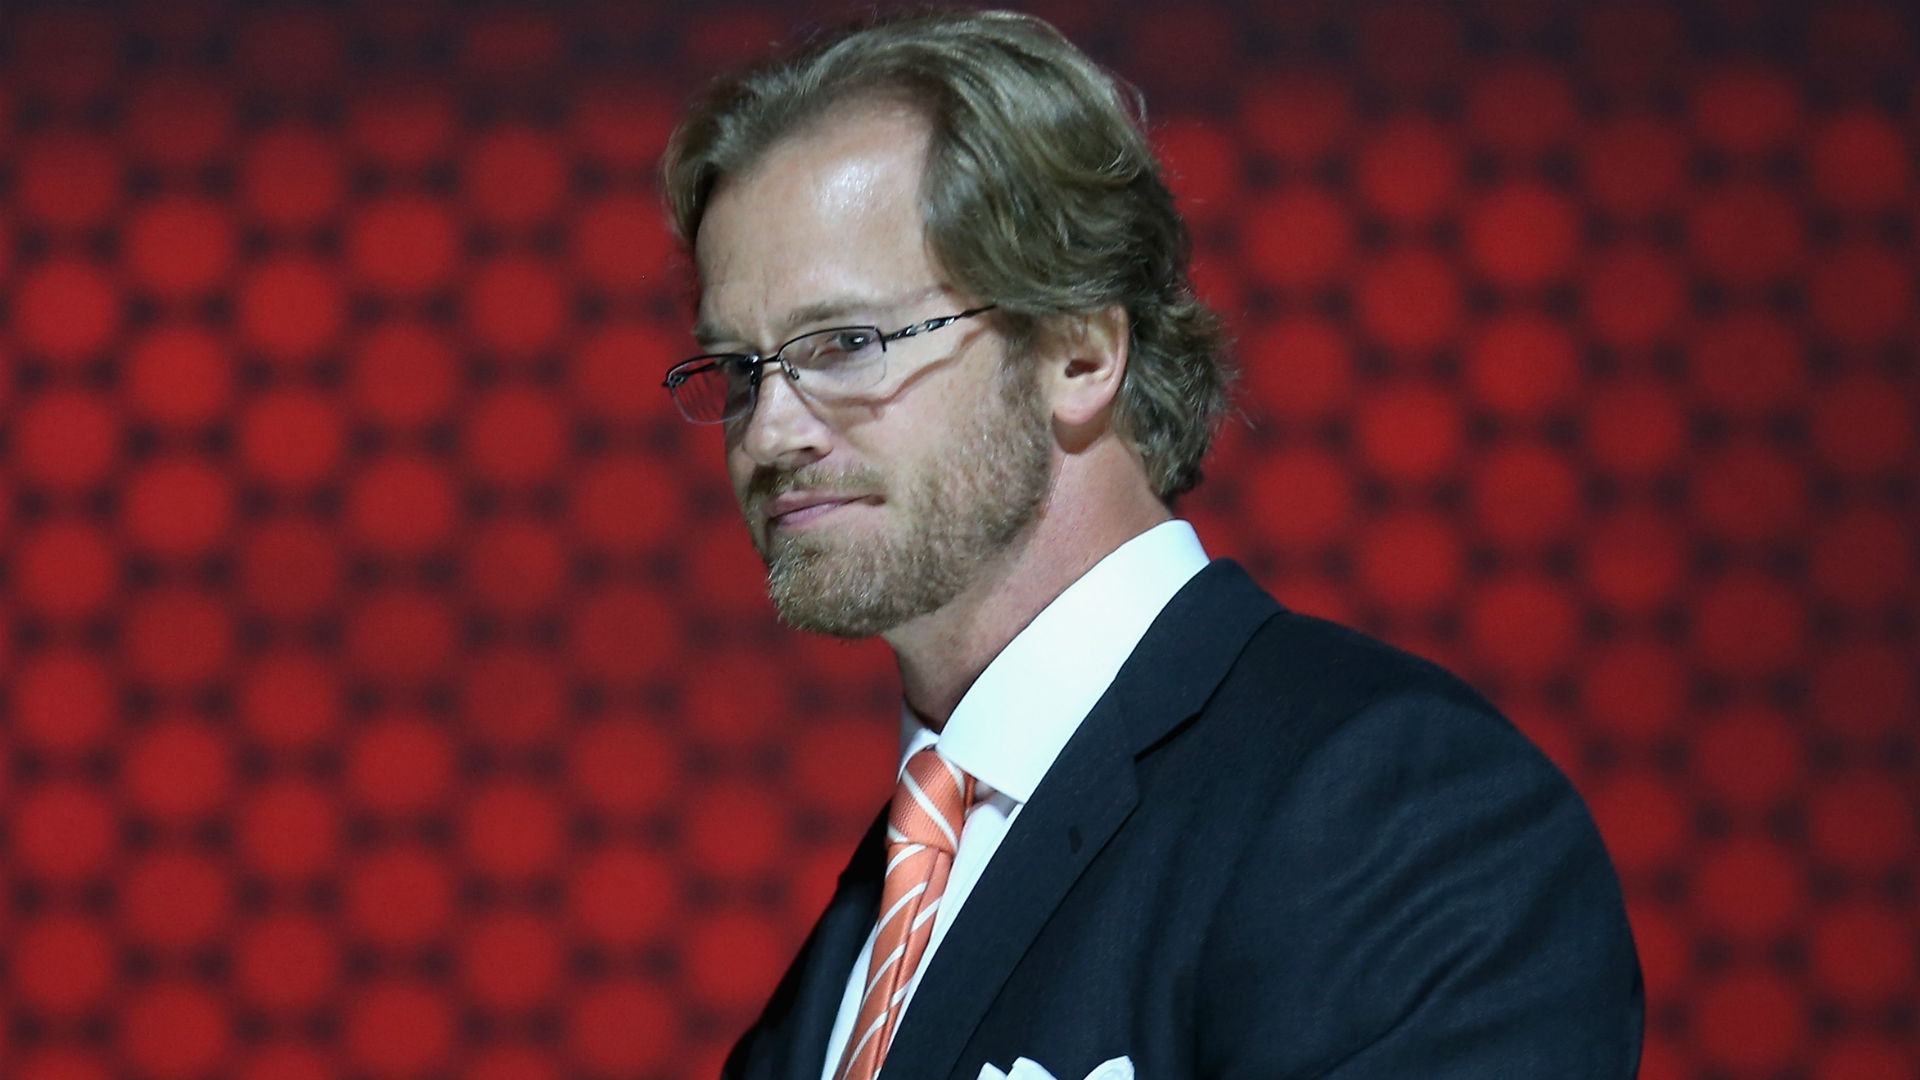 Chris-Pronger-100814-Getty-FTR.jpg